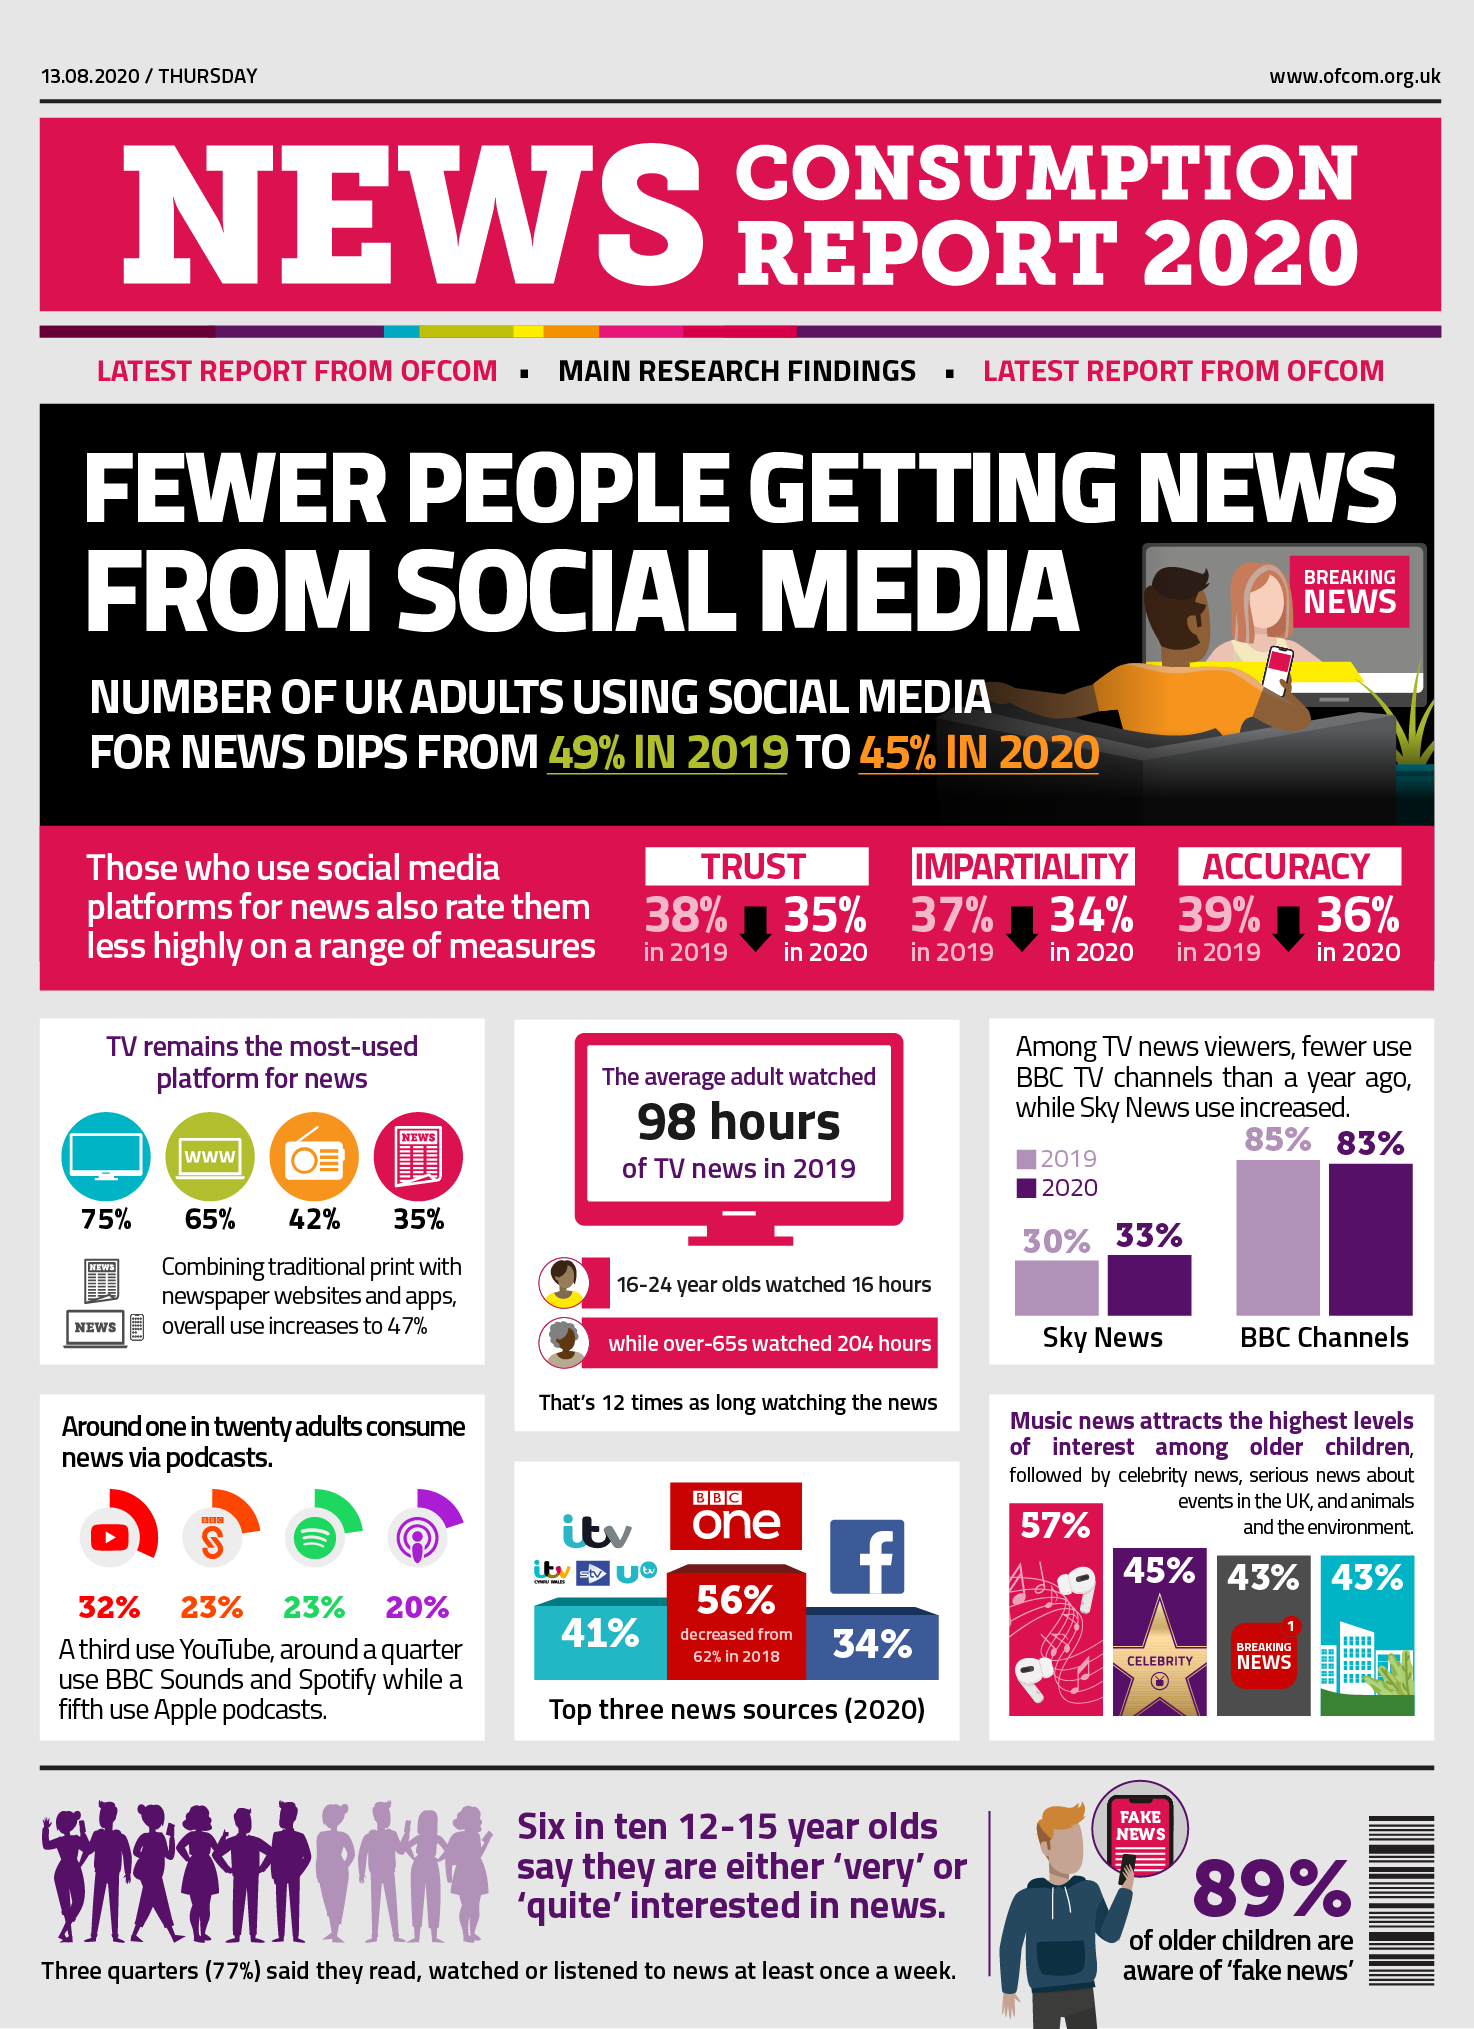 Key research findings: TV remains most popular platform for news. Fewer people are now getting news from social media as figures return to 2018 levels. The numbers have dipped from 49% in 2019 to 45% in 2020. Levels of trust, impartiality and accuracy in news from social media has decreased this year. Less people are likely to share and engage with news related content from social media platforms such as Facebook this year.